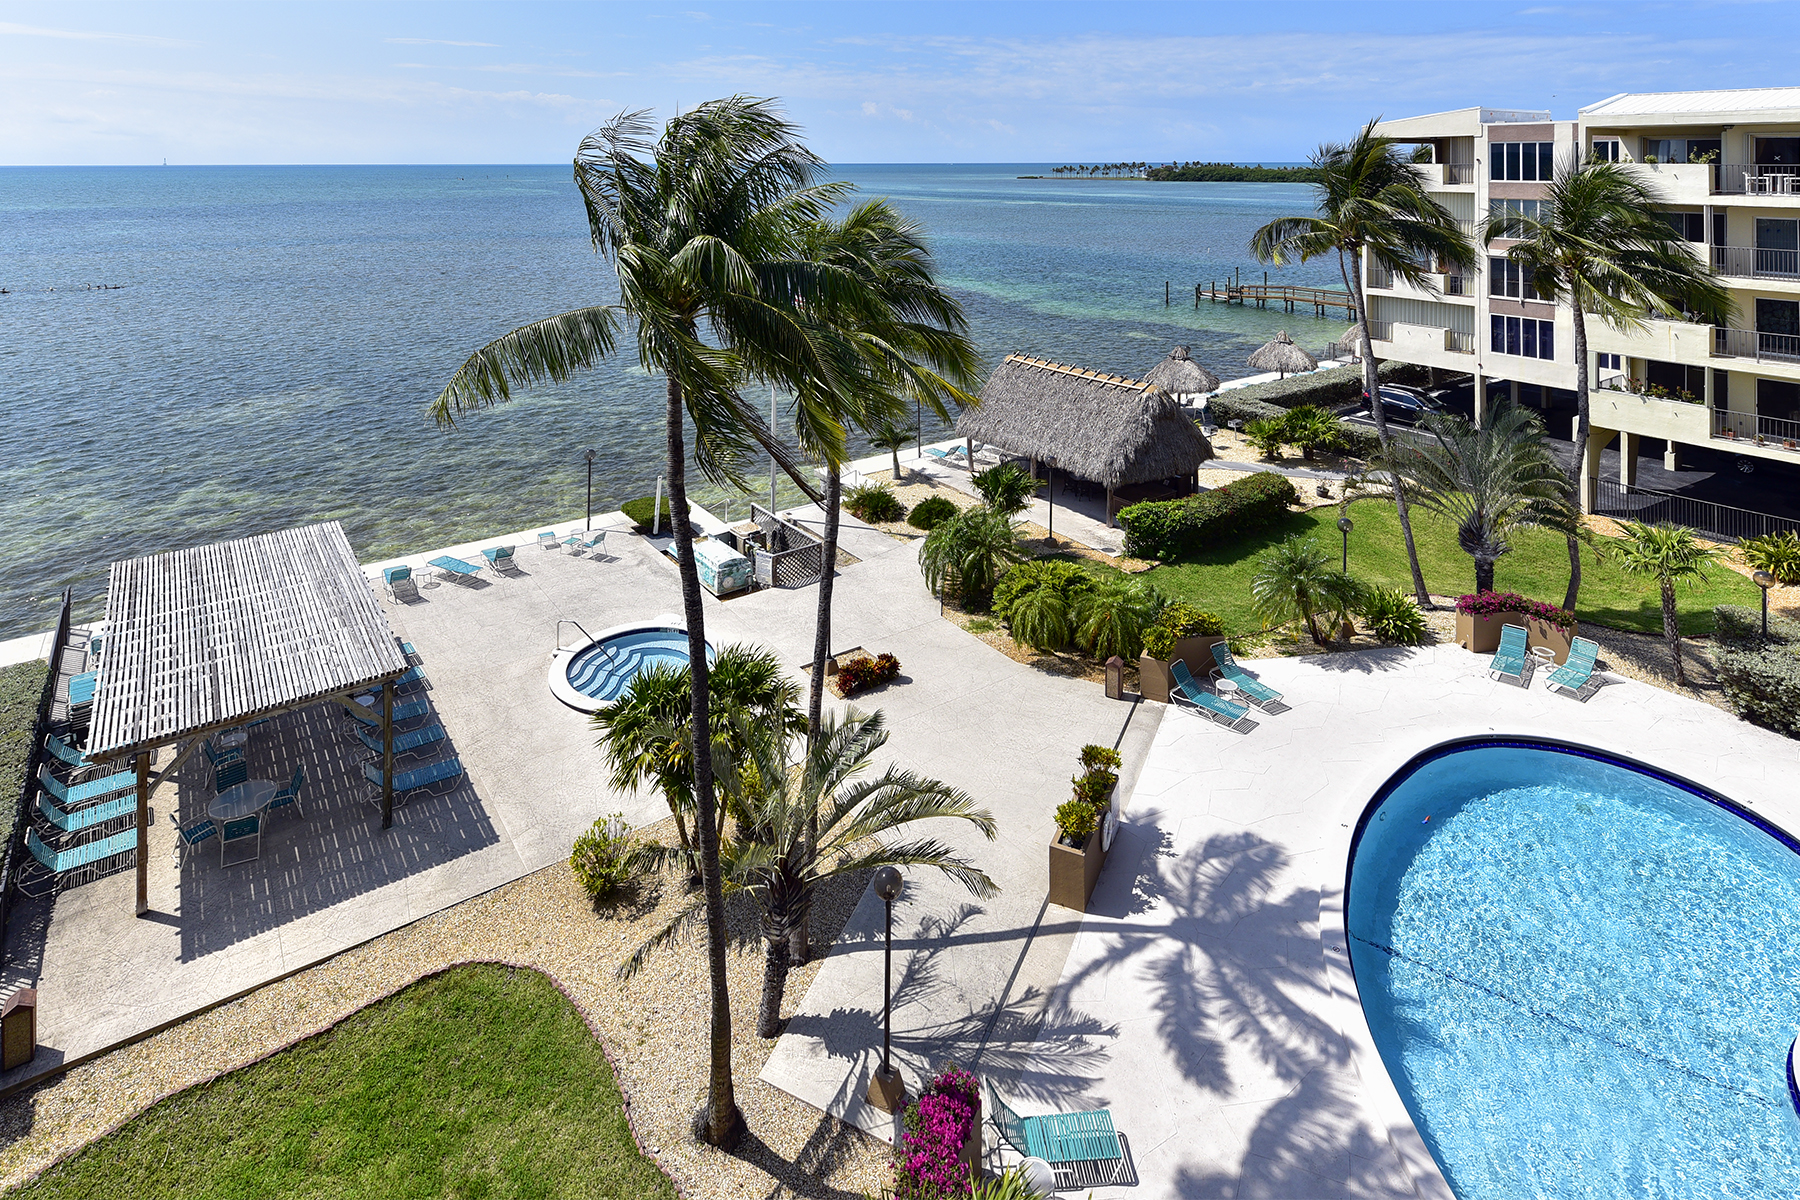 Additional photo for property listing at Oceanfront Complex 79901 Overseas Highway #519 Islamorada, Florida 33036 Stati Uniti